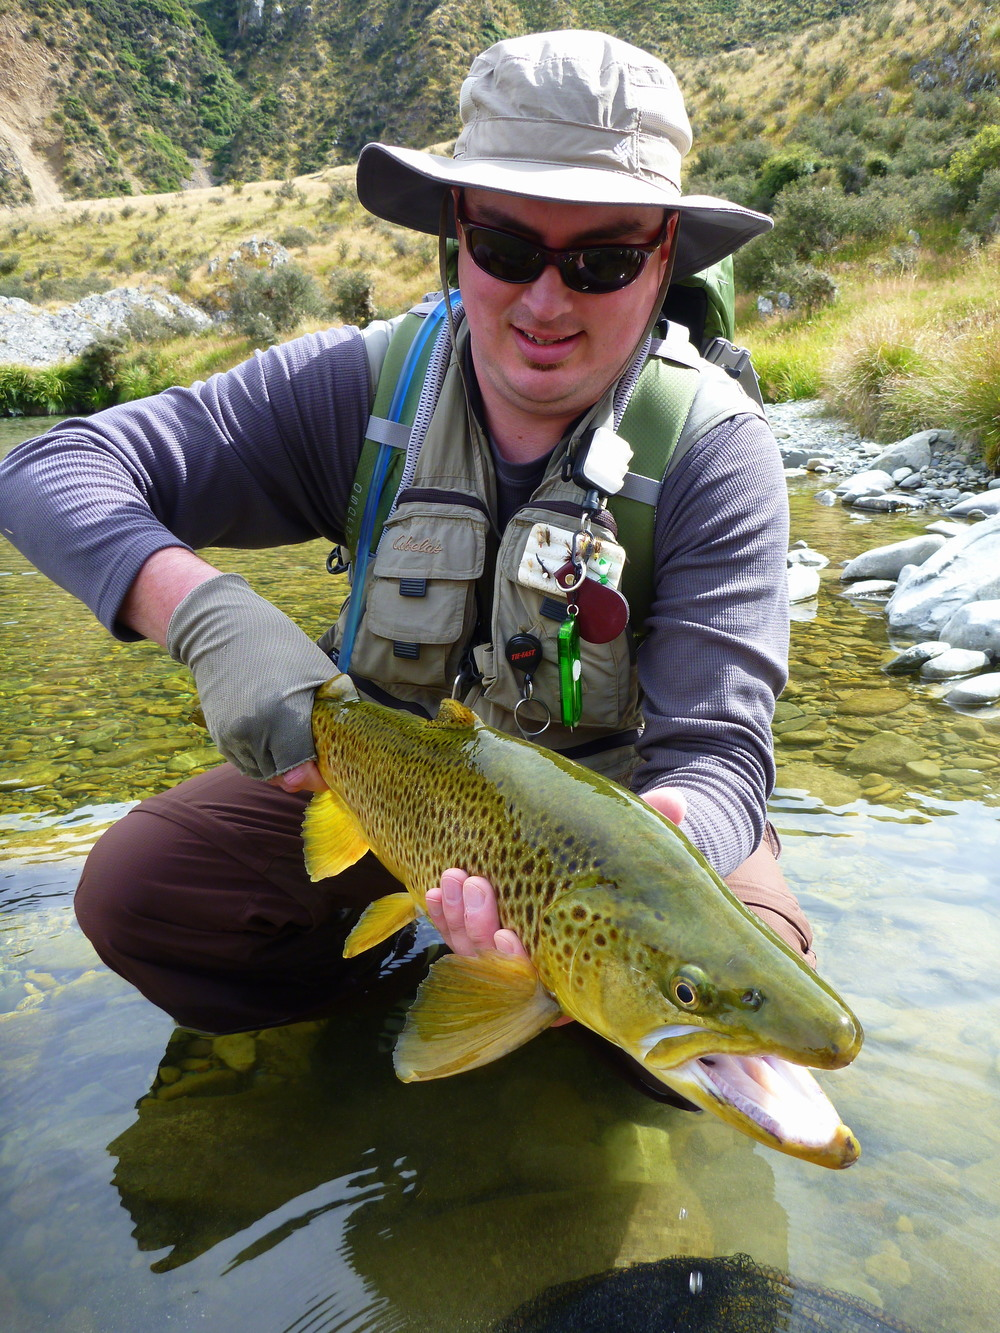 Aspiring Fly Fishing guide Paul Macandrew